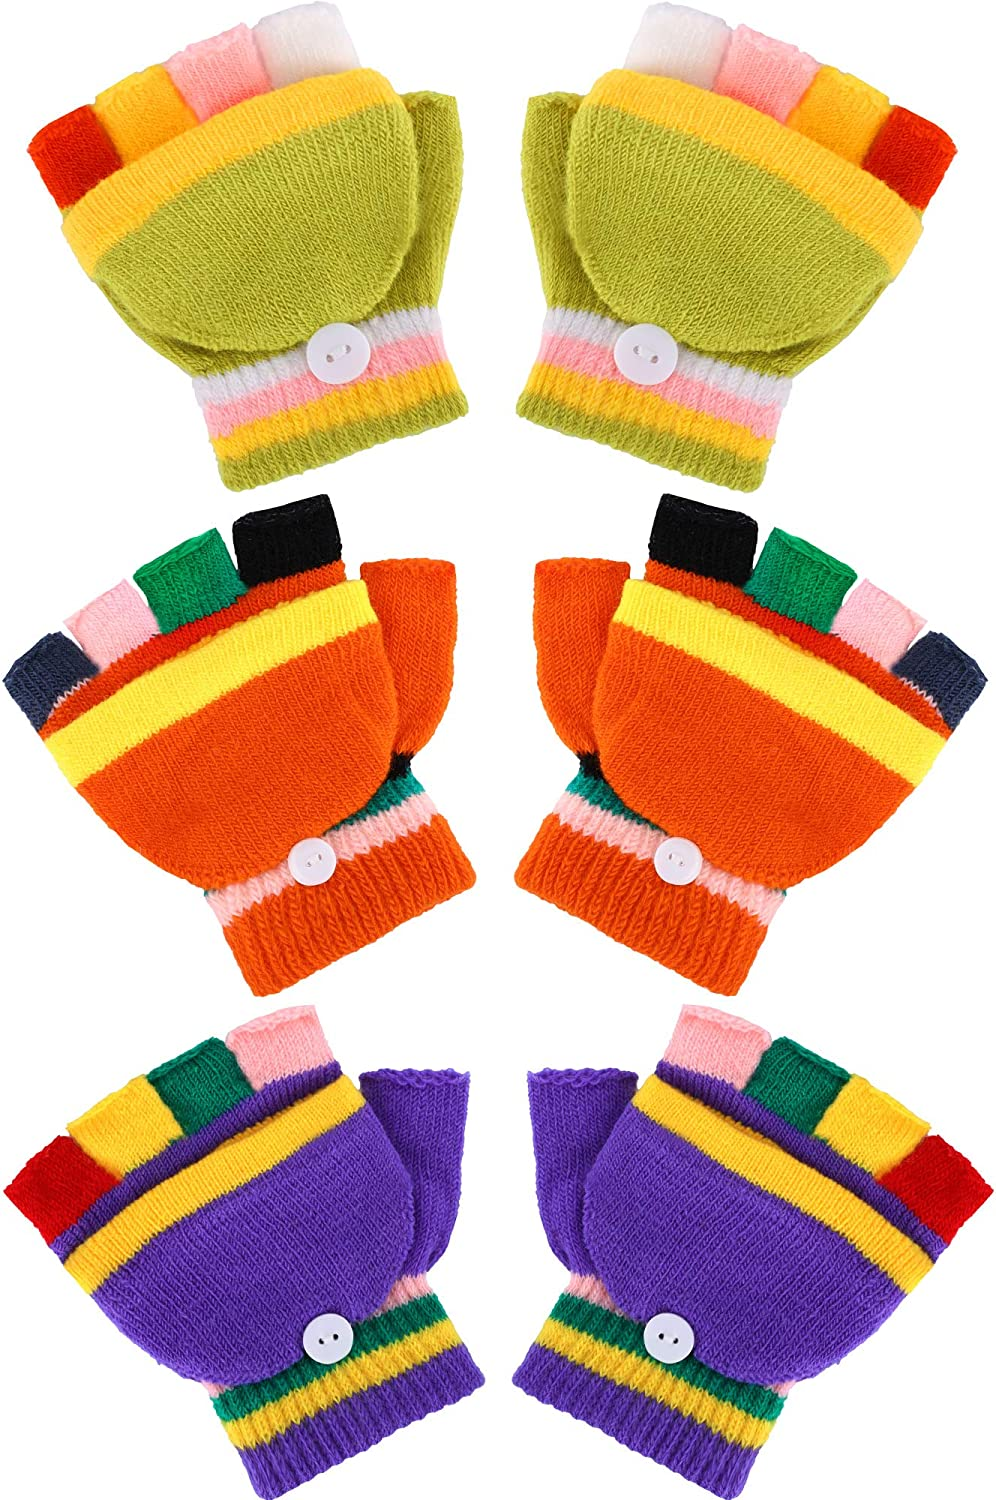 Boao 3 Pairs Kids Winter Fingerless Mittens Convertible Flip Top Gloves with Mitten Cover